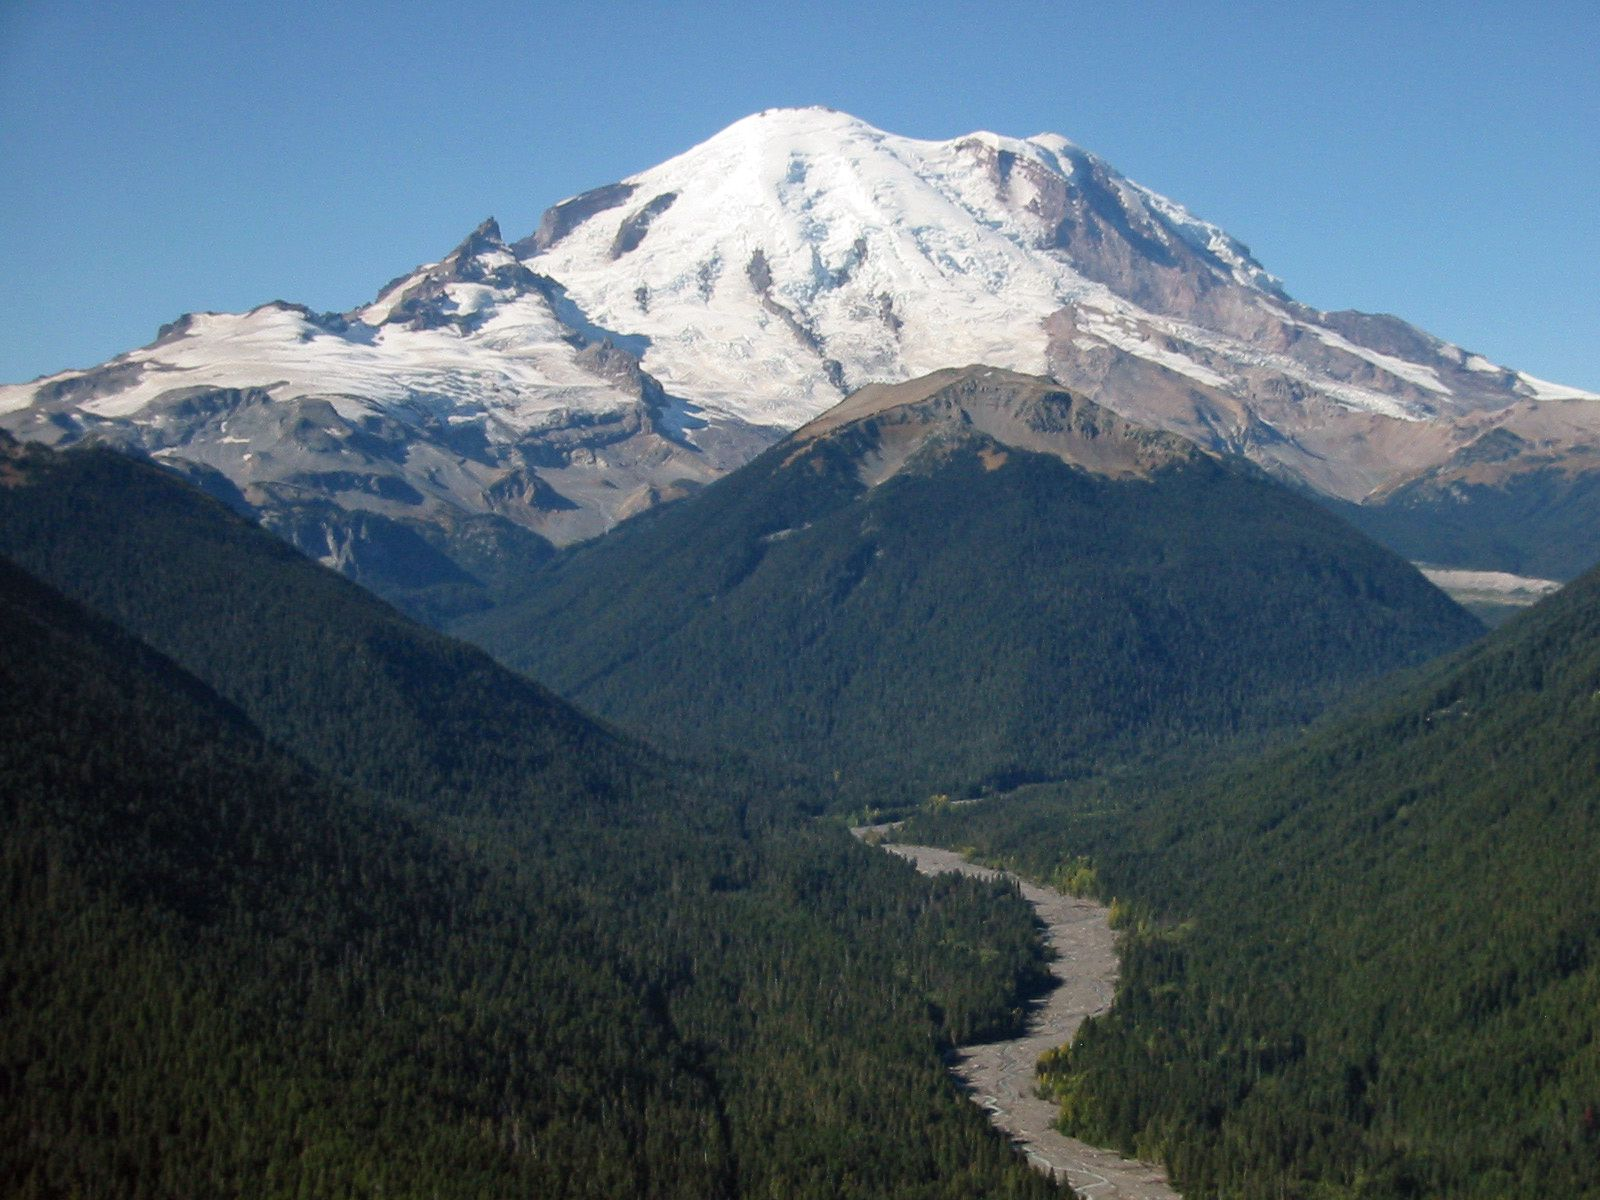 Mt. Rainier, the highest volcano in the Cascade Range - photo Walter Siegmund